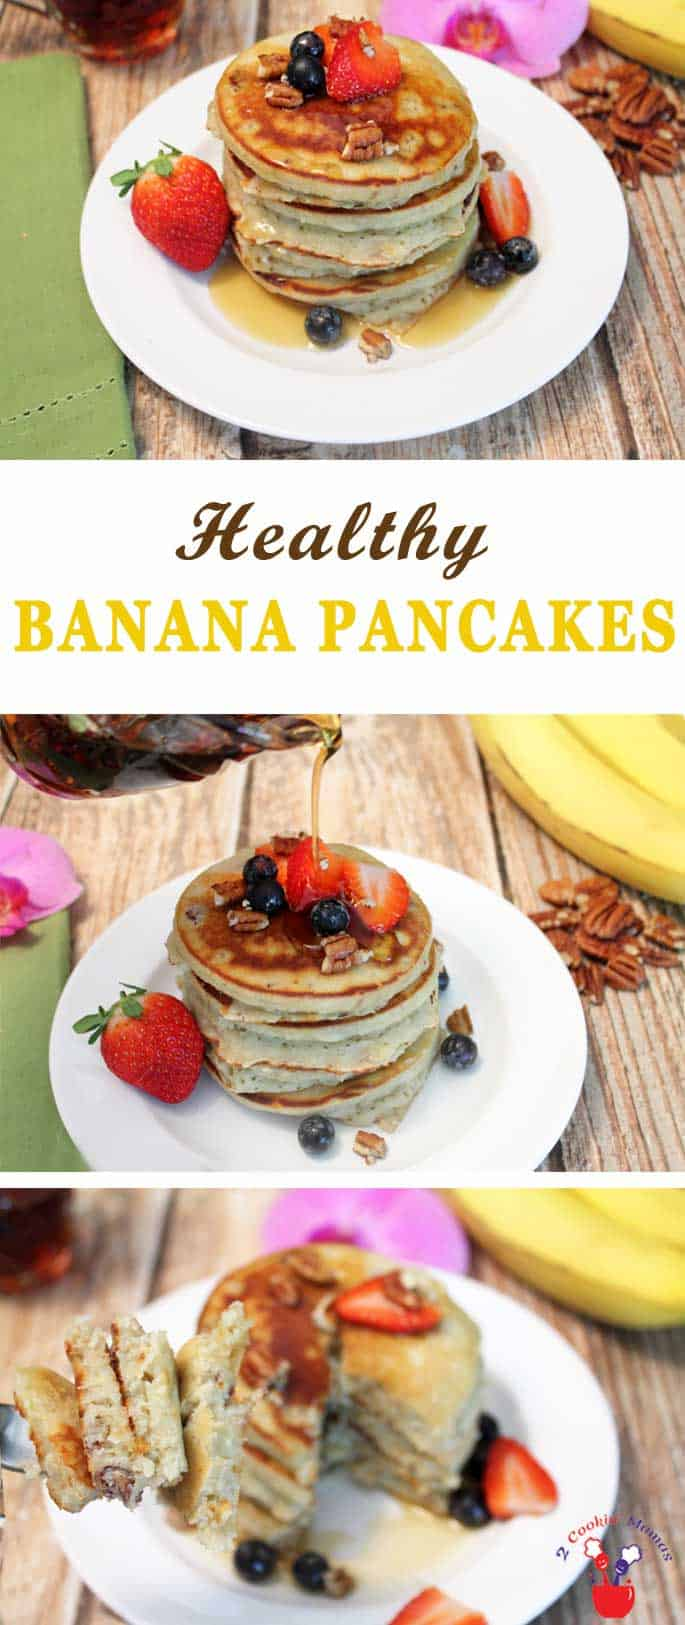 Banana Pancakes | 2 Cookin Mamas Delicious, healthy banana pancakes that won't weigh you down. They're easy to make and full of protein, fiber and potassium to start your day off right. #recipe #pancakes #breakfast #healthy